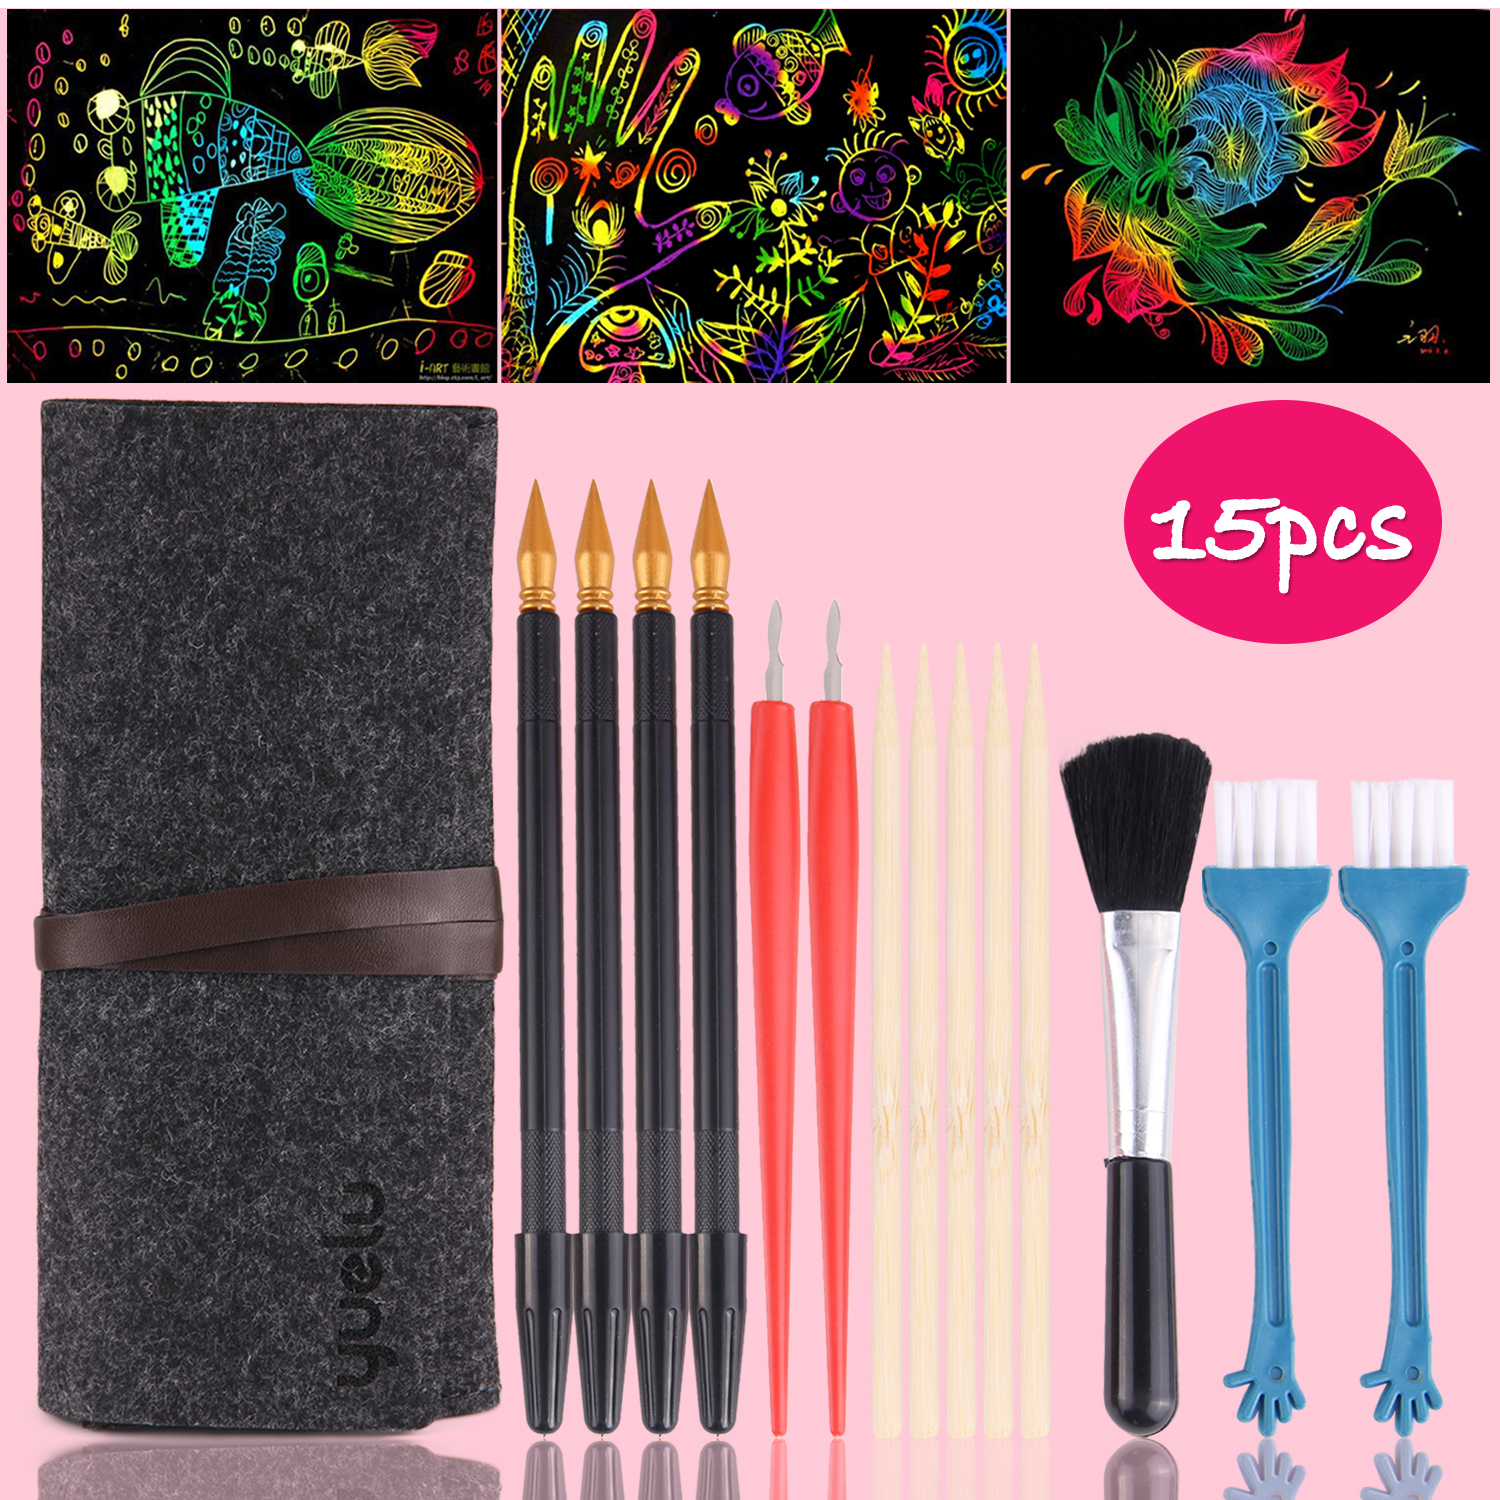 Kids 15PCS Scratch Art Tools Scratch Paper Coloring Pens Bamboo Drawing Sticks Repair Pen Brush Bag Scraping Painting Toy